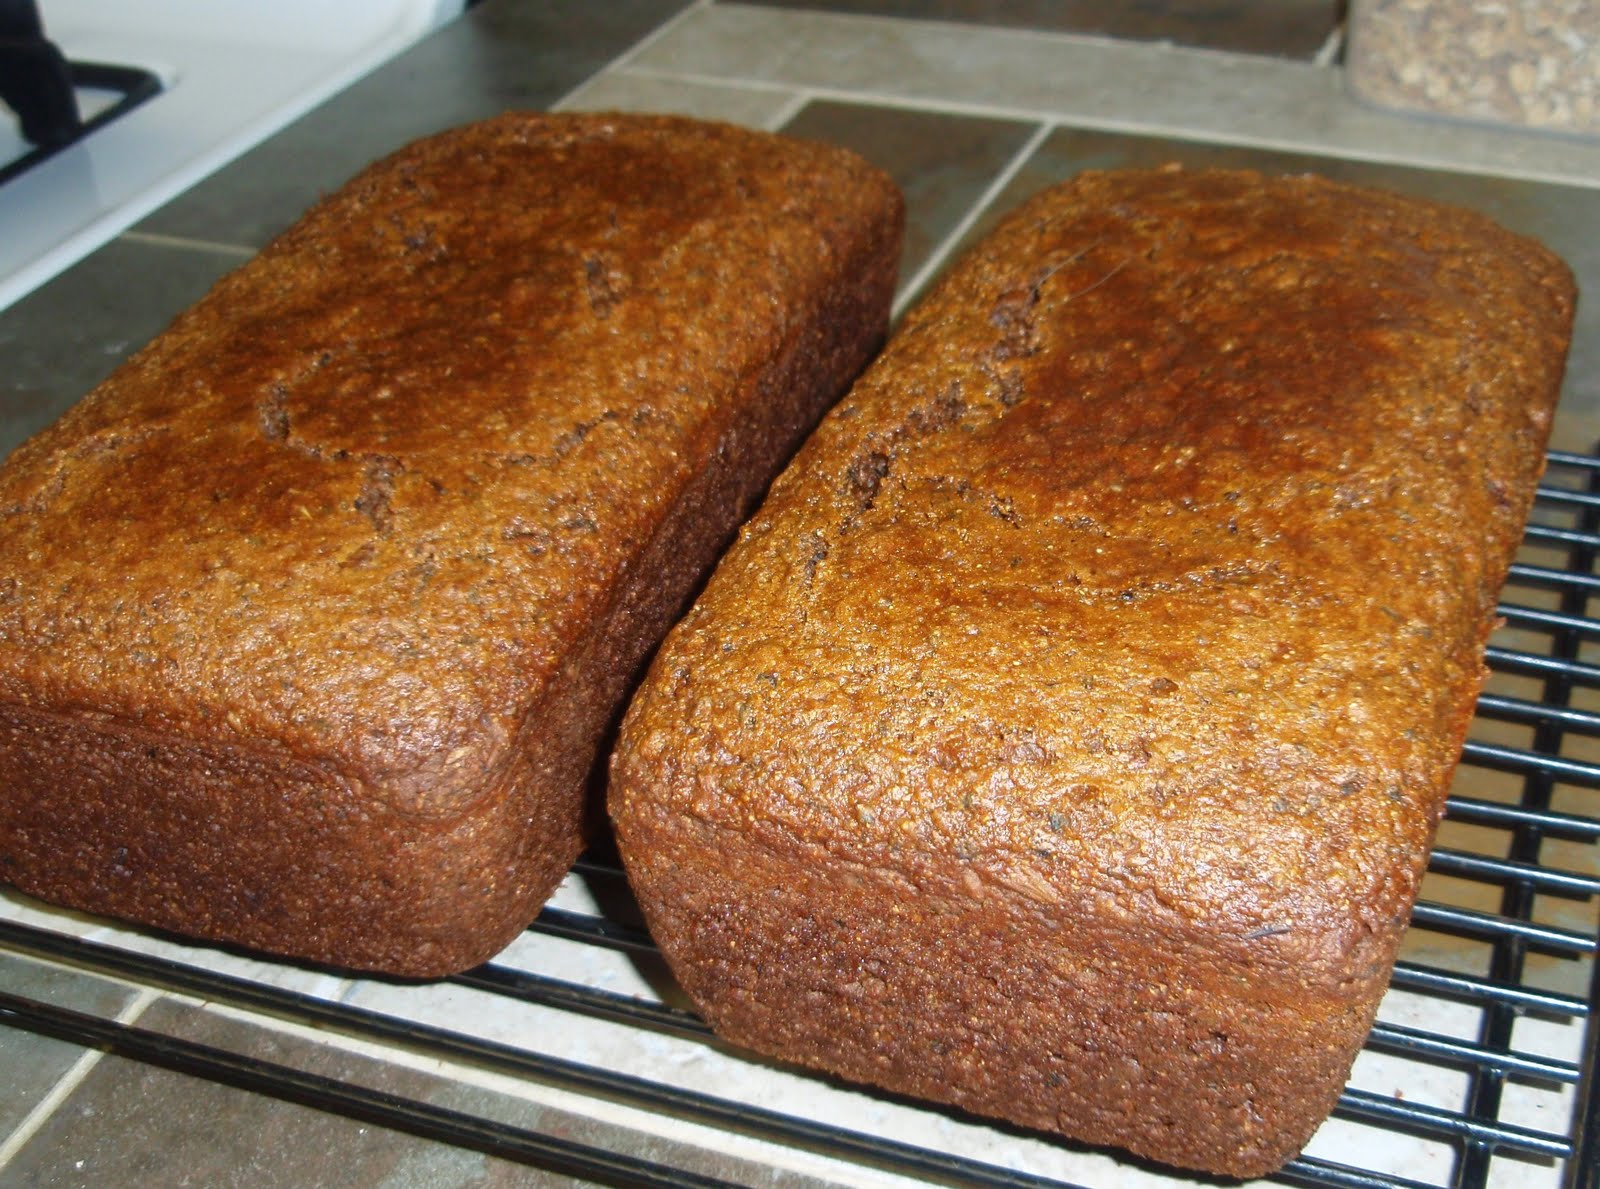 strawberry bread brown butter maple pumpkin bread boston brown bread ...